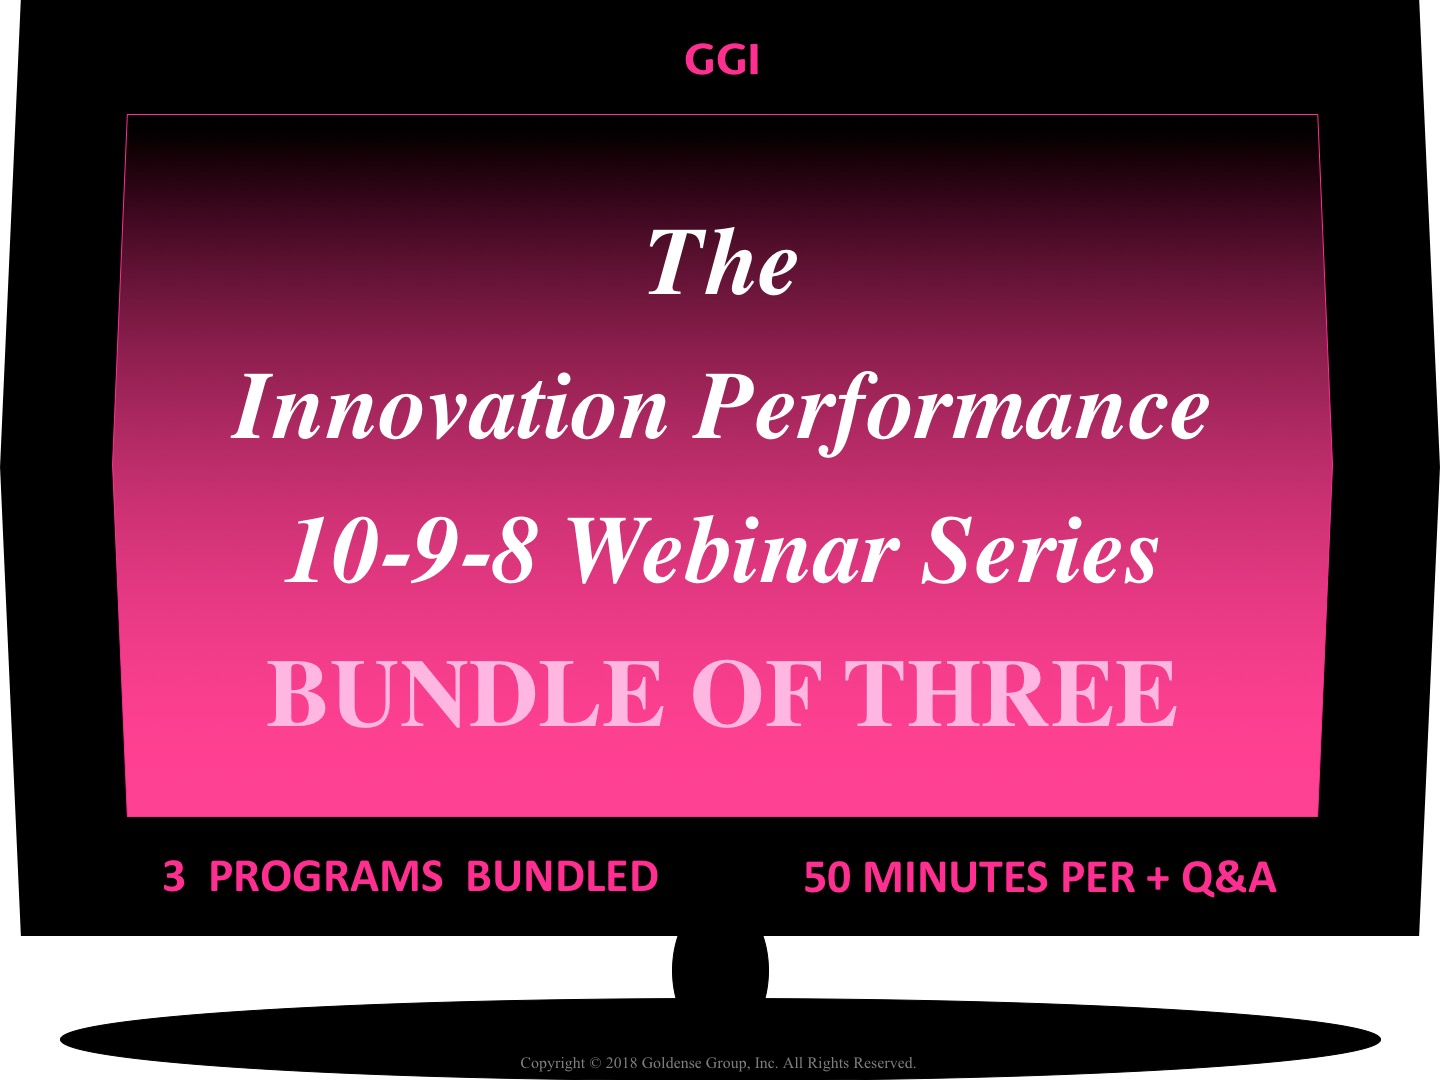 Innovation Perforance Webinar 10-9-8 Series